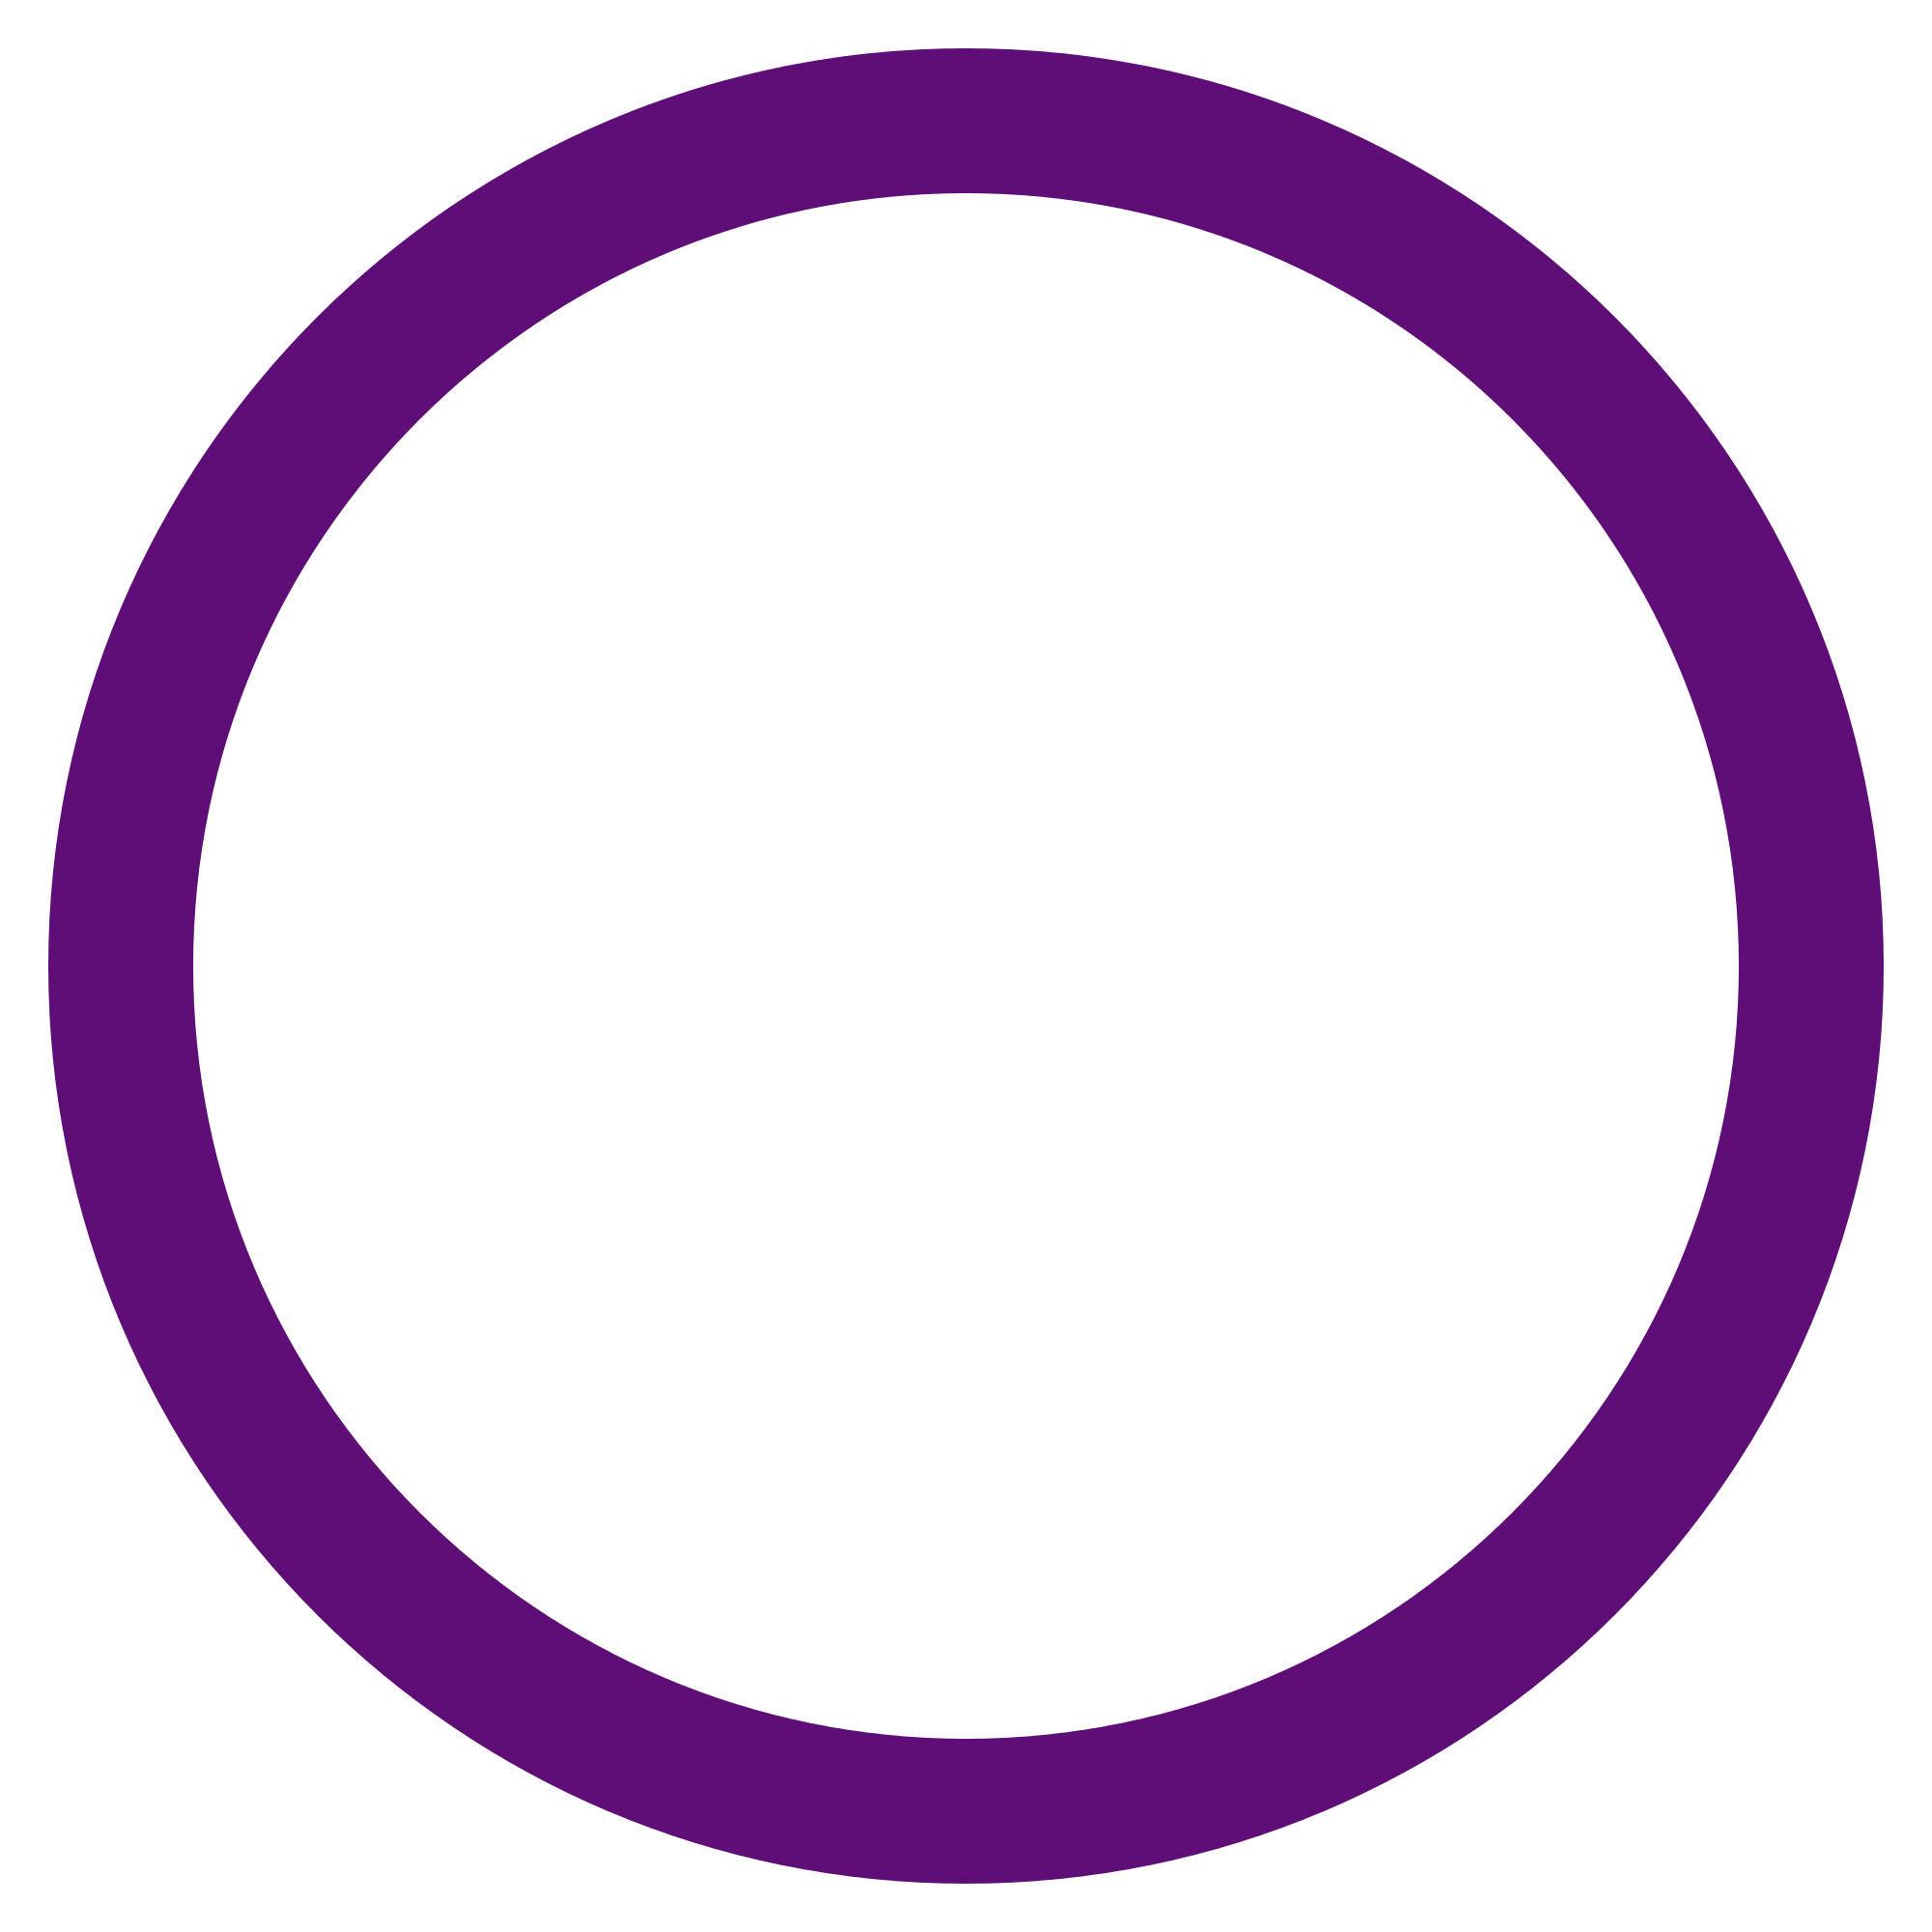 Symbolismstep 3 menstruation fear evil tortures bucket a purple circle is a symbol for gender neutrality derived from the two gender symbols colours mixed together and without the distinguishing cross or arrow biocorpaavc Images